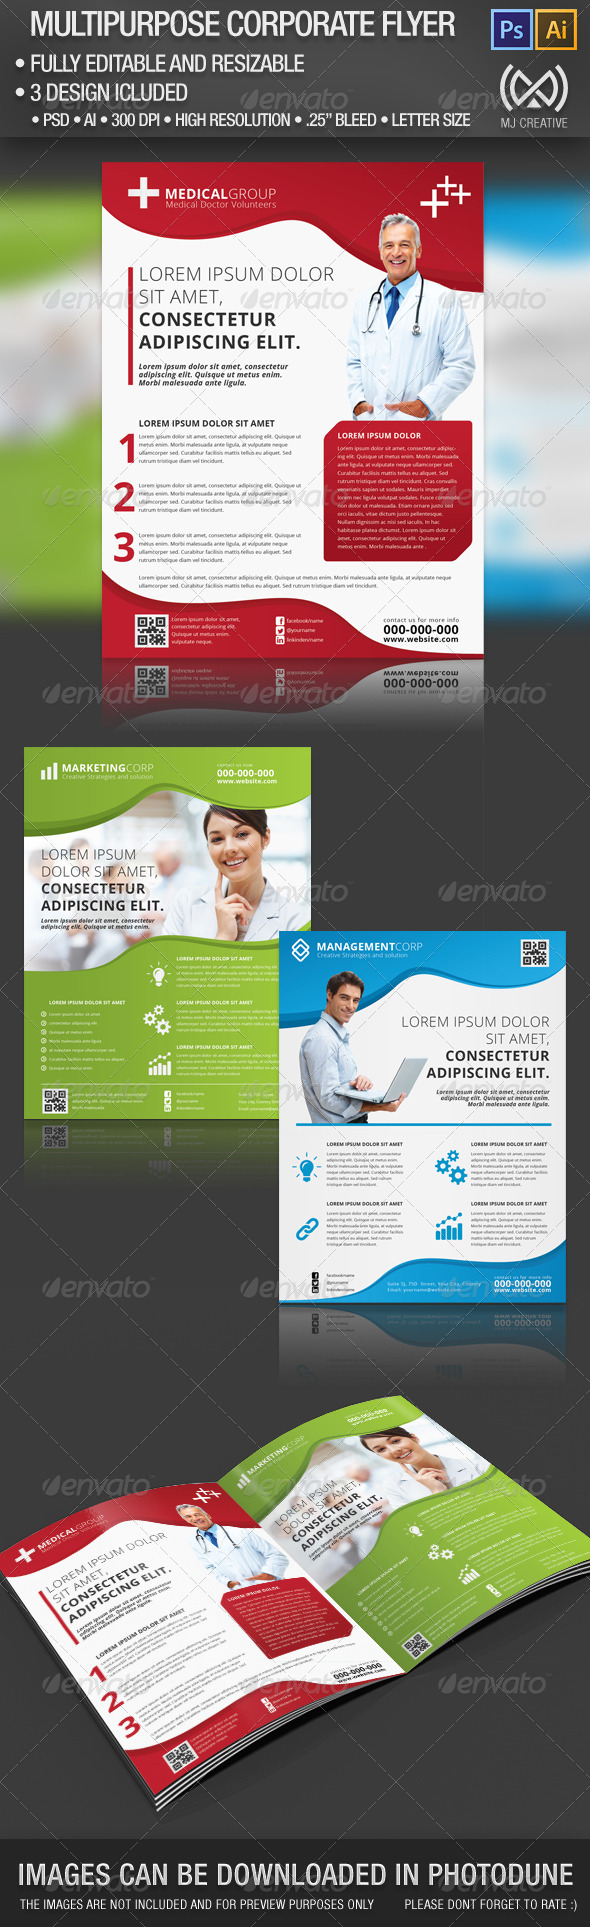 GraphicRiver Multipurpose Corporate Flyer 5177405